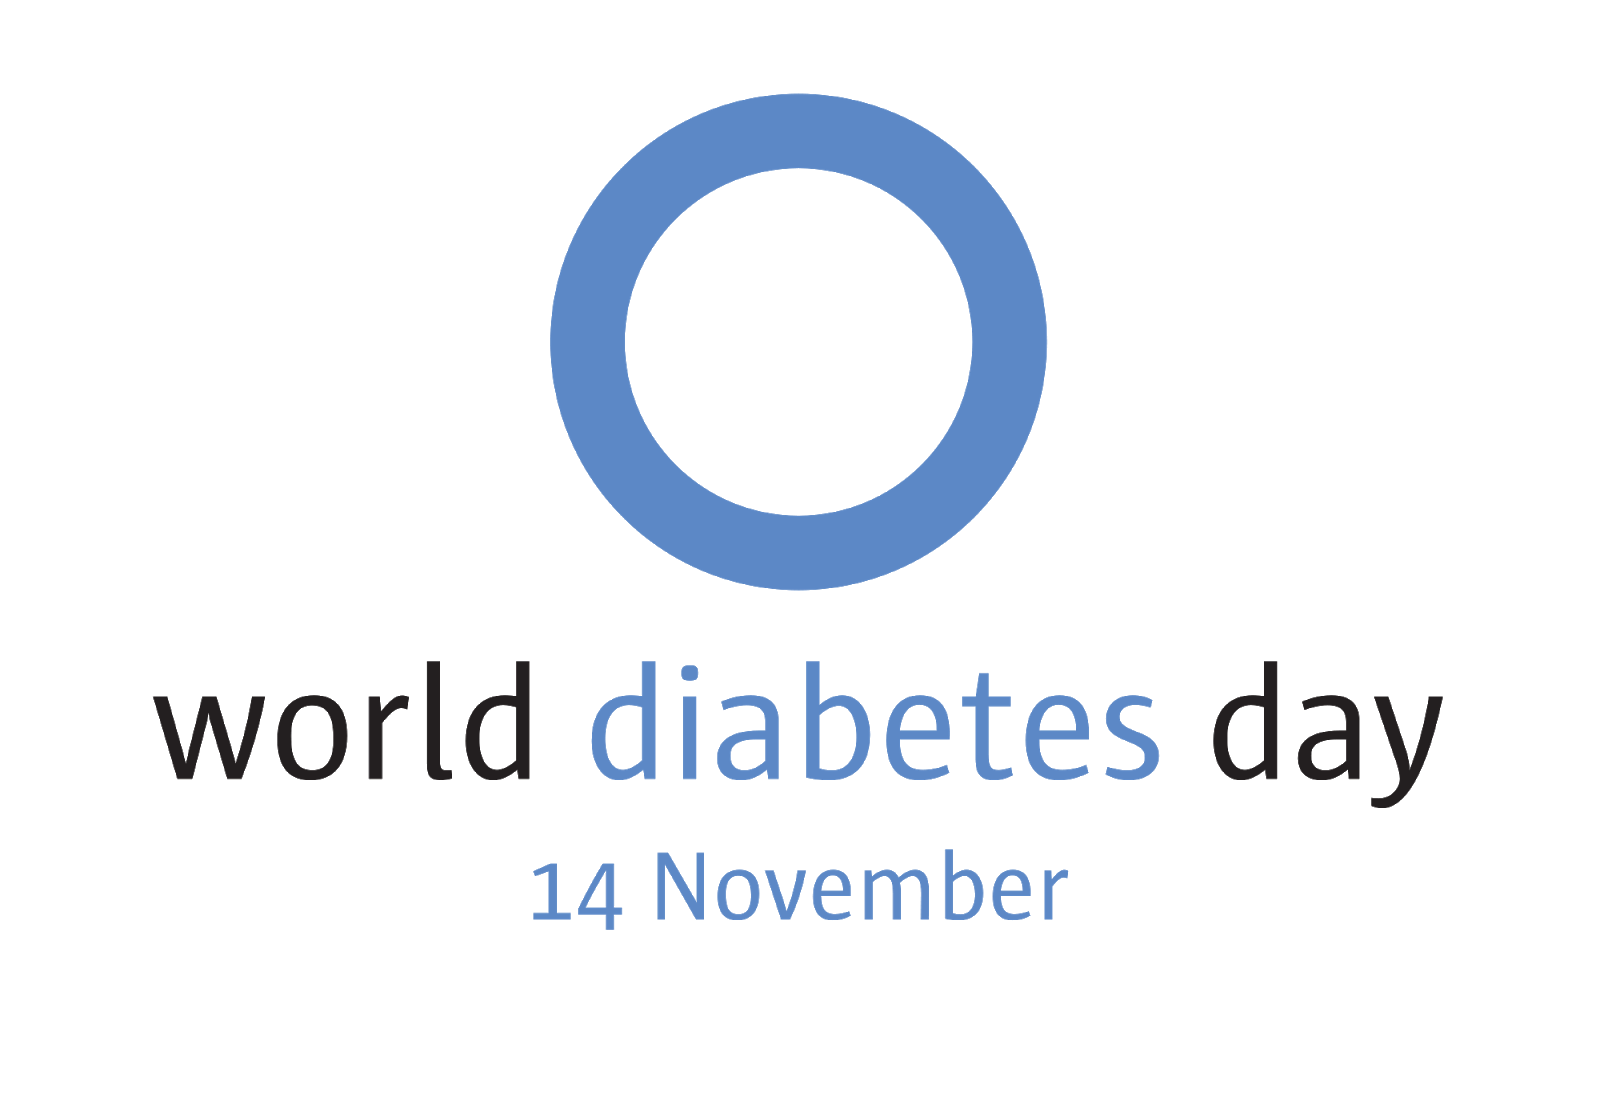 Health: World Diabetes Day Being Observed Today